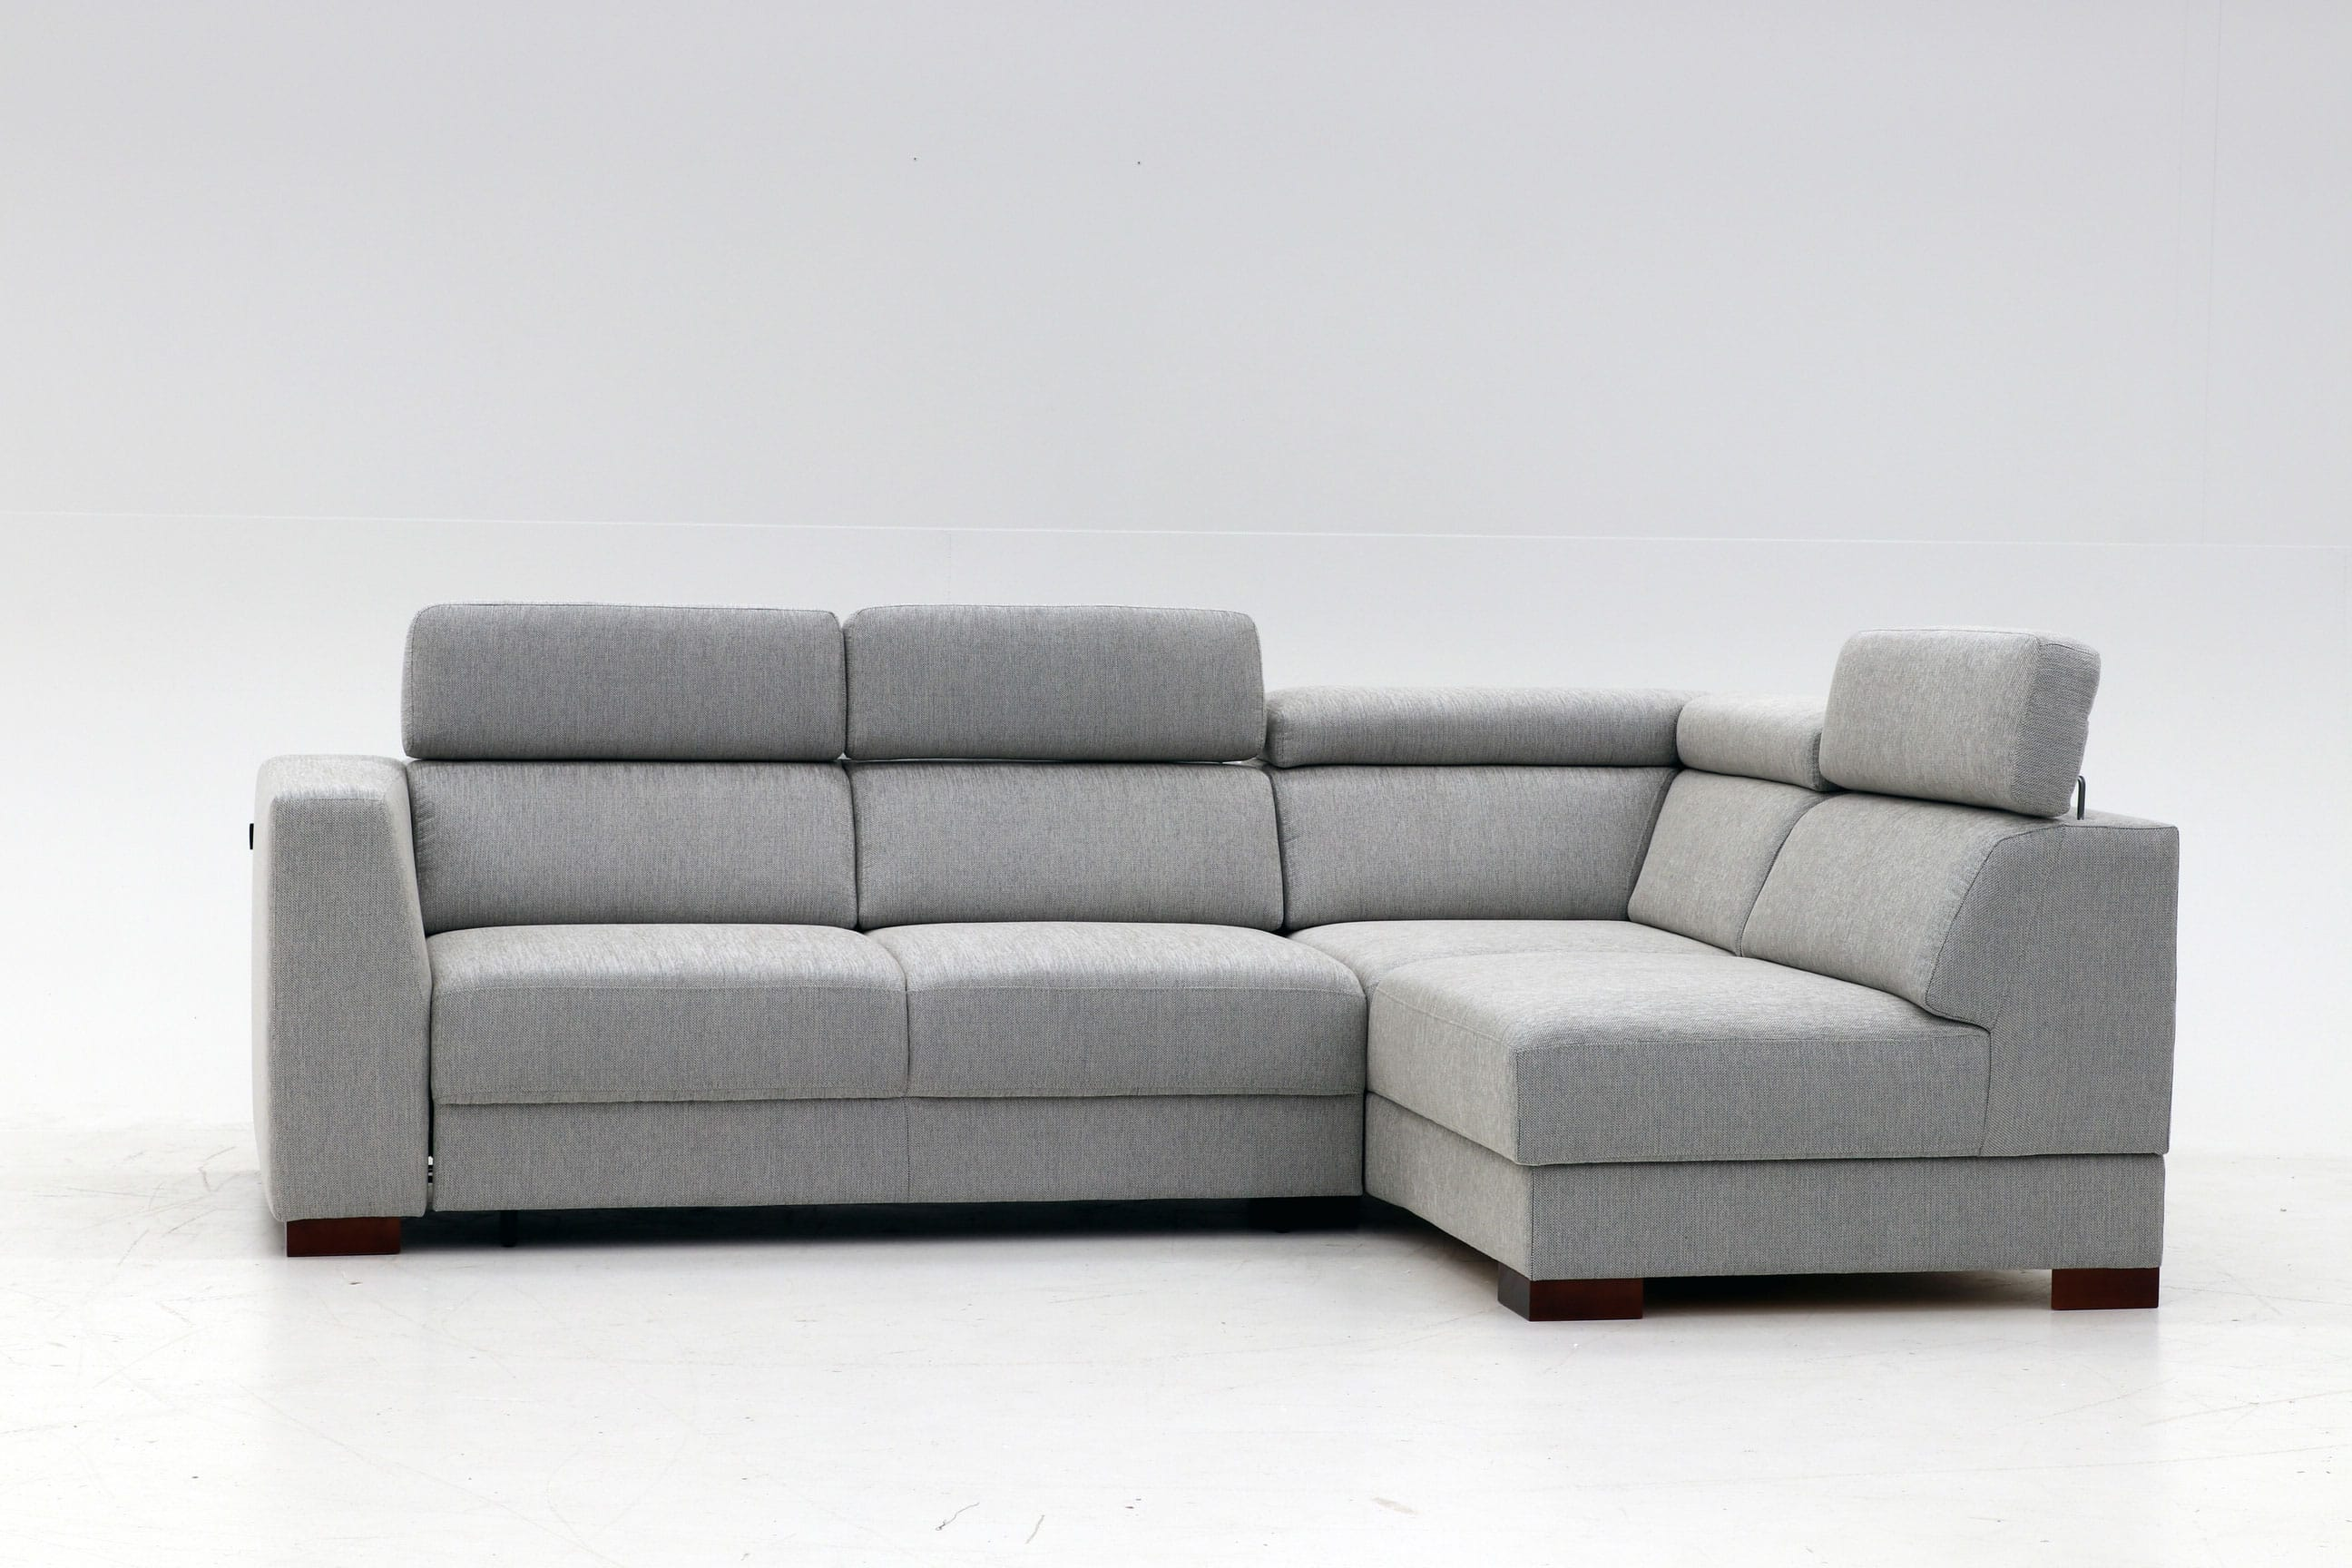 Large Sofa Beds Everyday Use Halti Sectional Sofa Sleeper Full Xl Size Rhf By Luonto Furniture